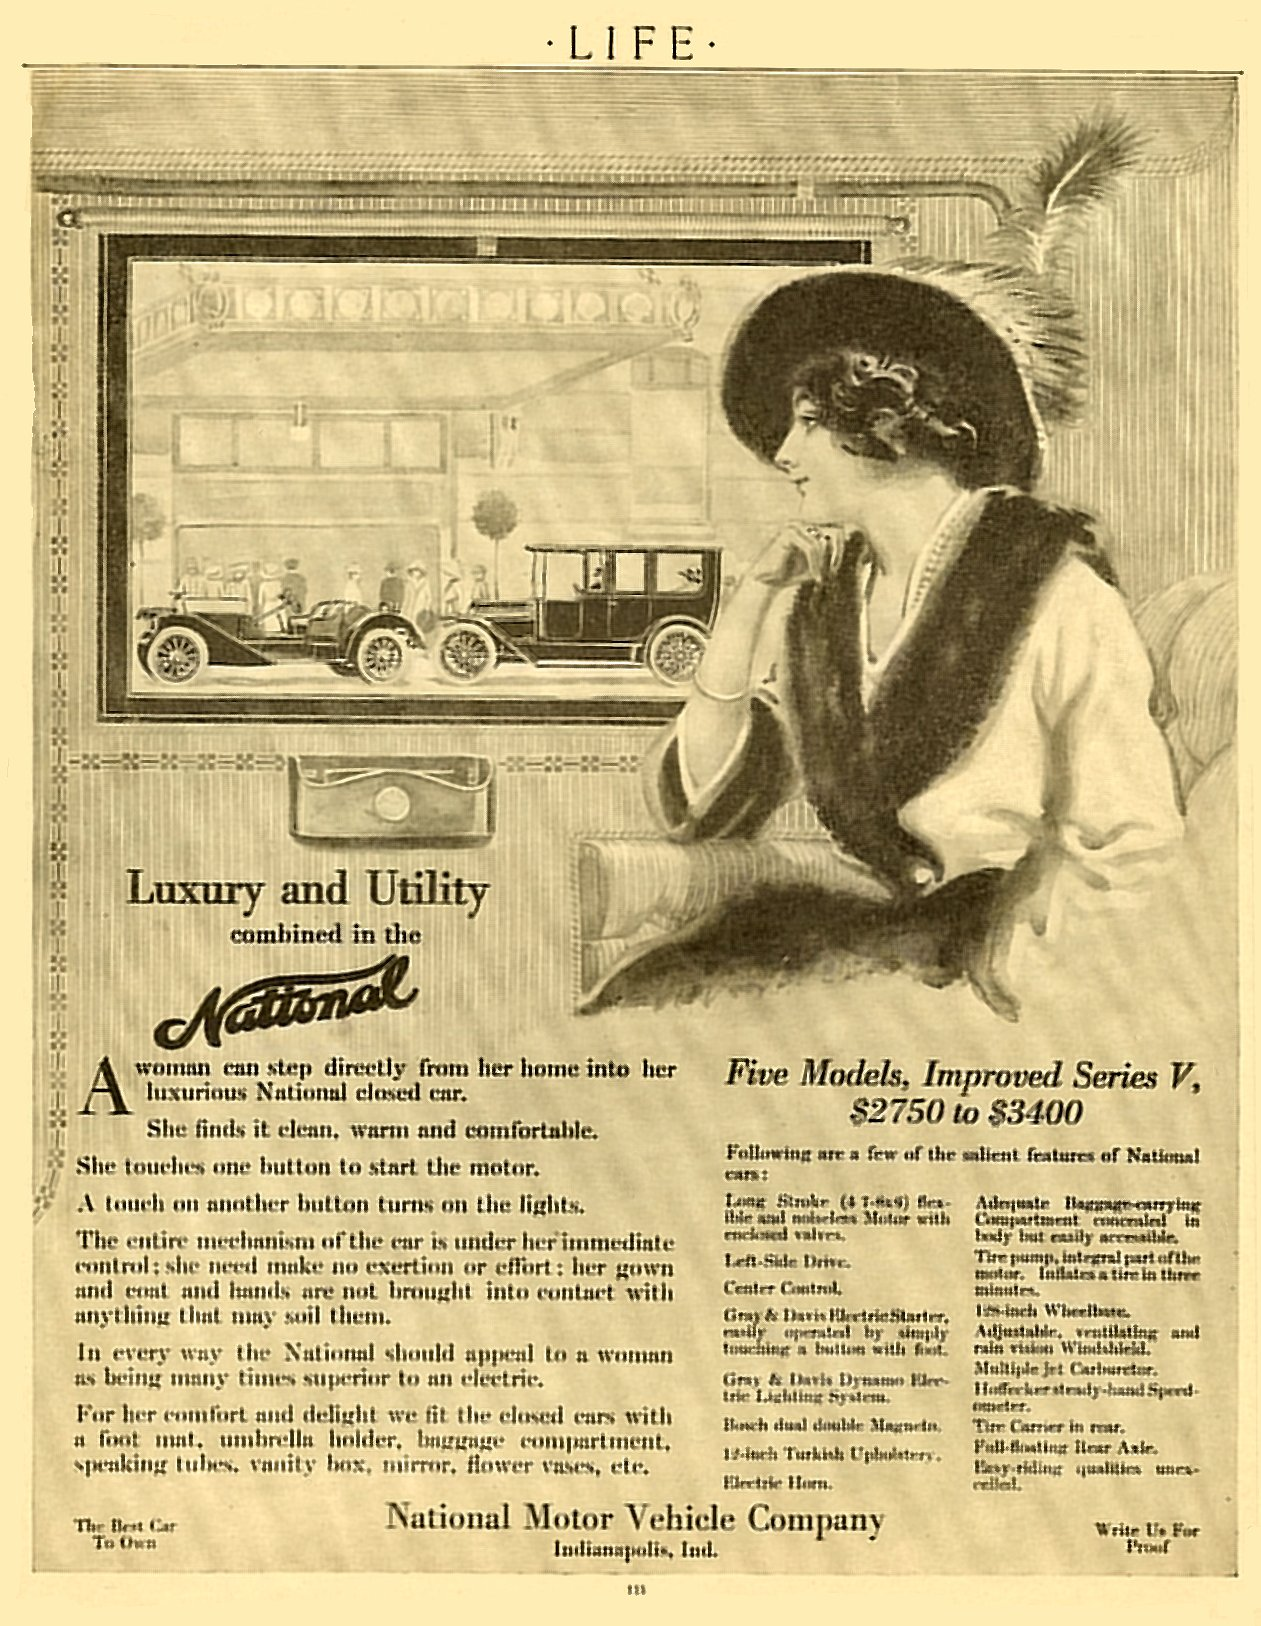 1913 1 9 NATIONAL Luxury and Utility Combined in the National $2750 ($52,552 in 2005) to $3,400 ($64,974 in 2005) LIFE January 9, 1913 9″x11″ page 133